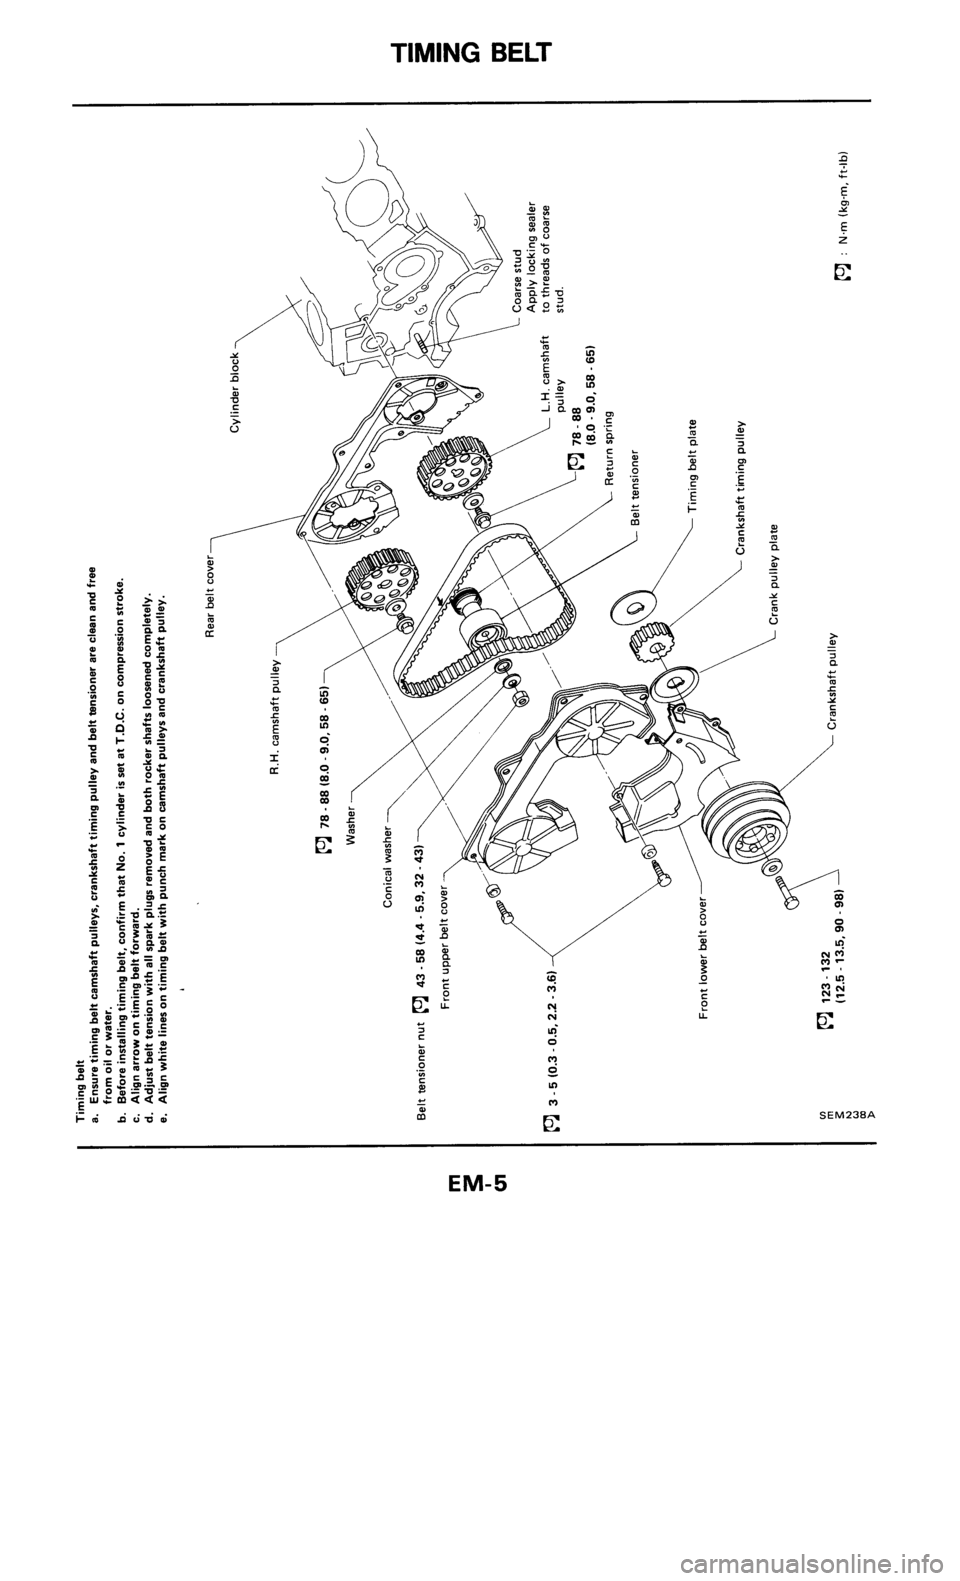 Nissan 300zx 1986 Z31 Engine Mechanical Workshop Manual Porsche Flat 6 Diagram